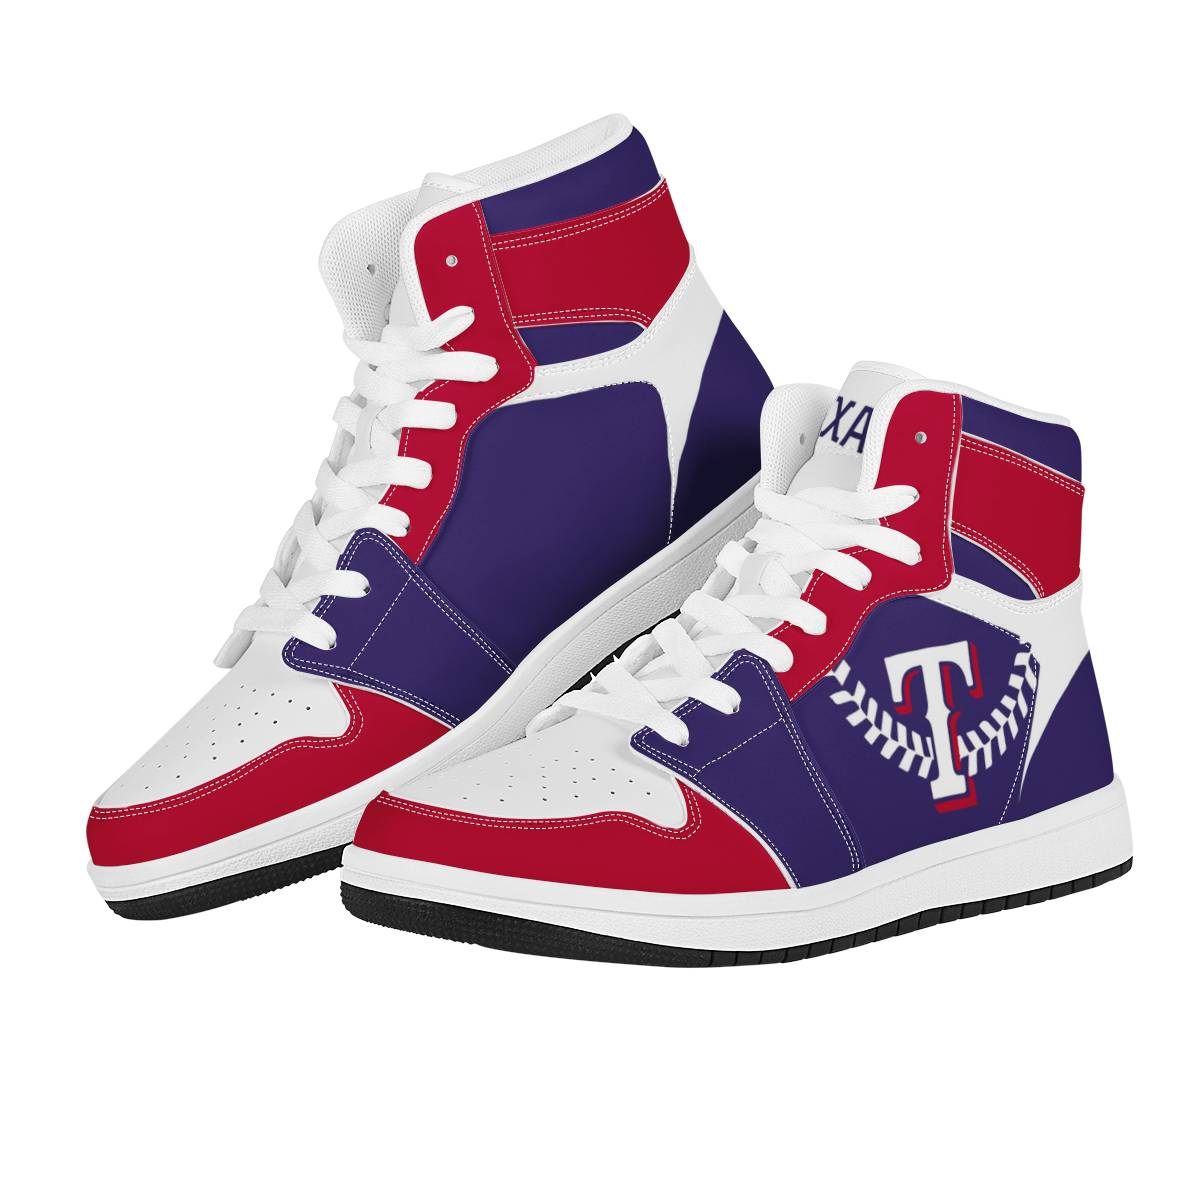 Women's Texas Rangers High Top Leather AJ1 Sneakers 001